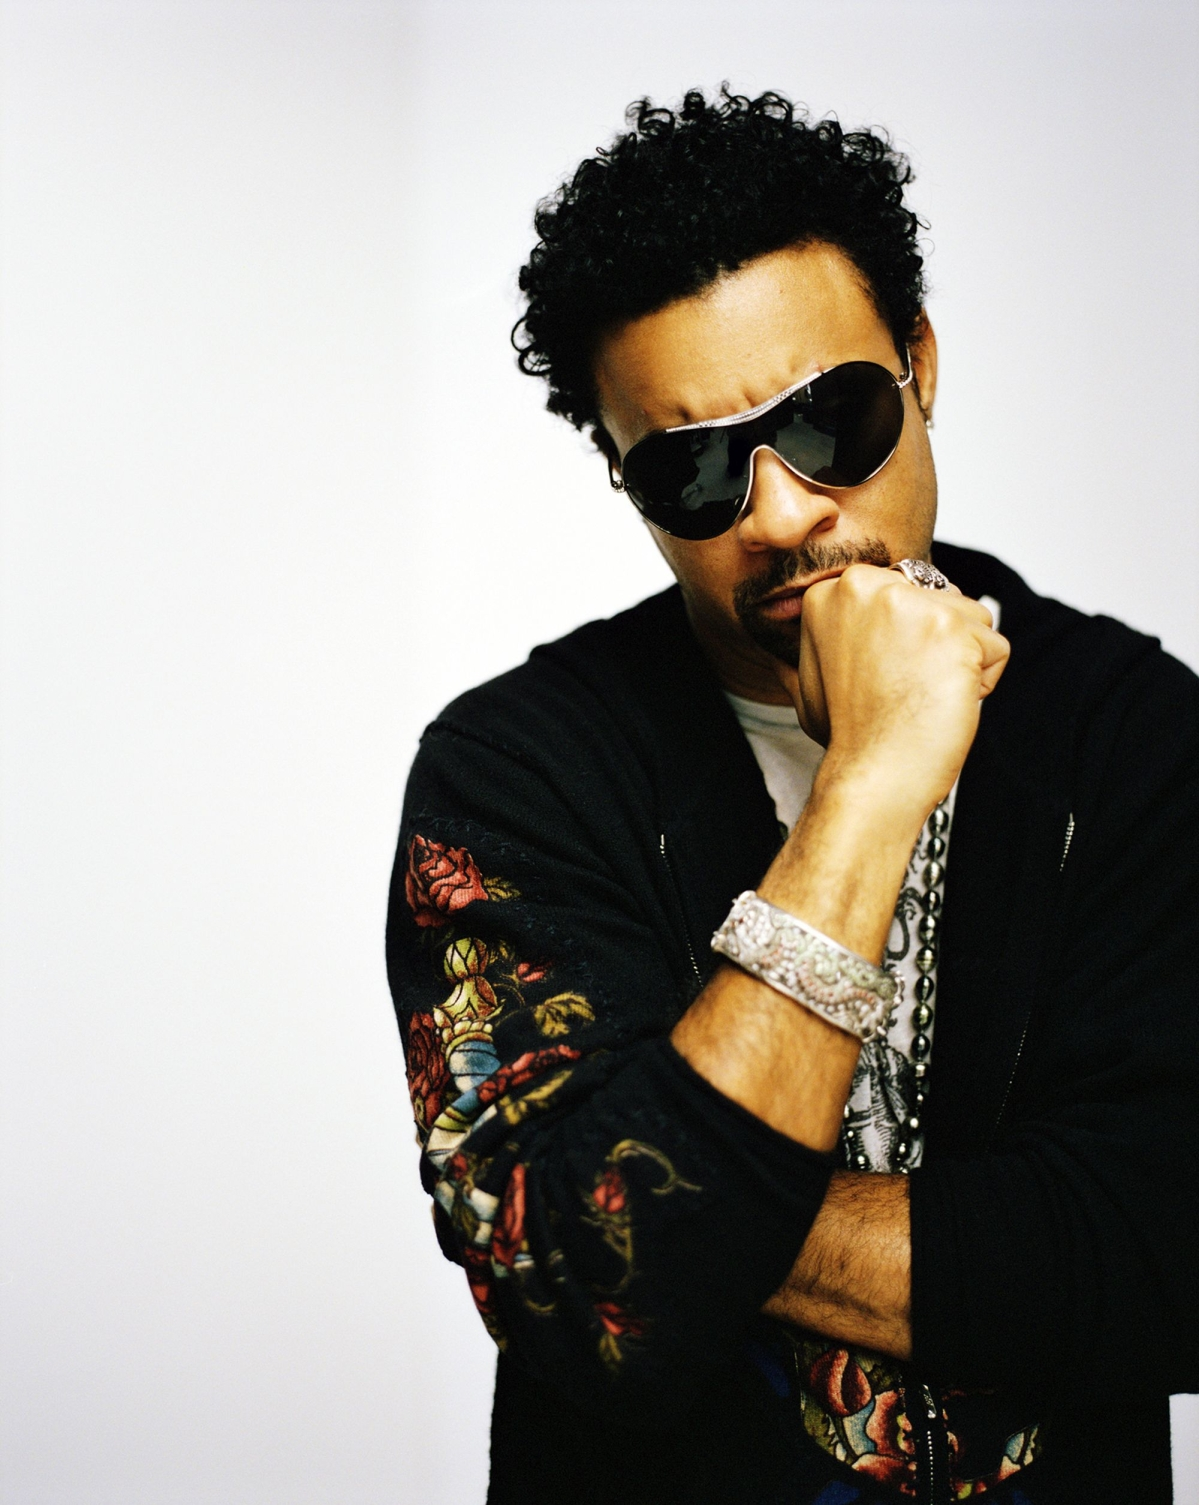 Shaggy performing live in concert